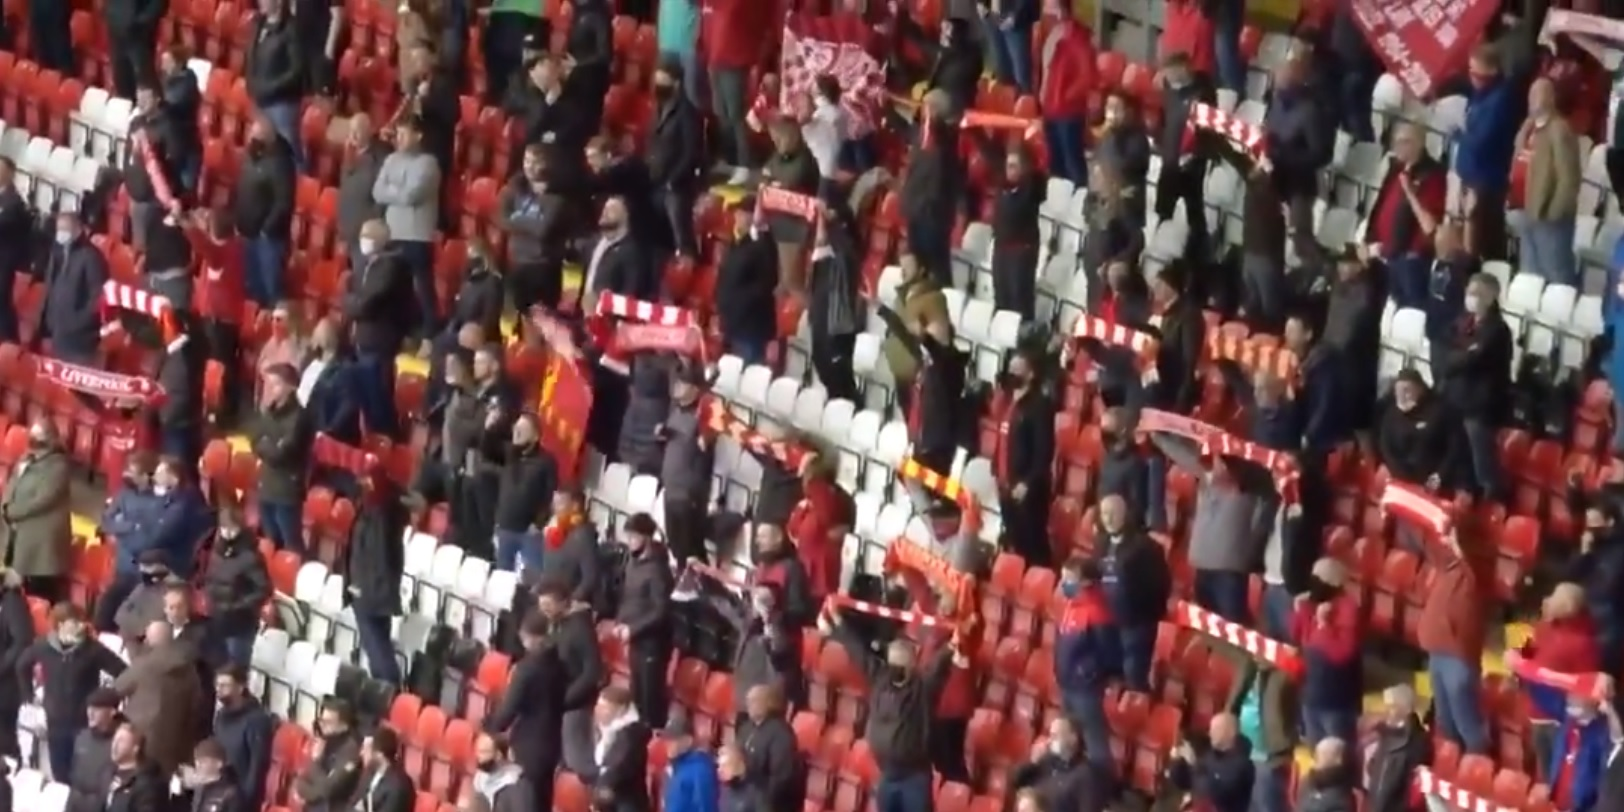 (Video) 10,000 Liverpool fans singing YNWA at Anfield will give you goosebumps